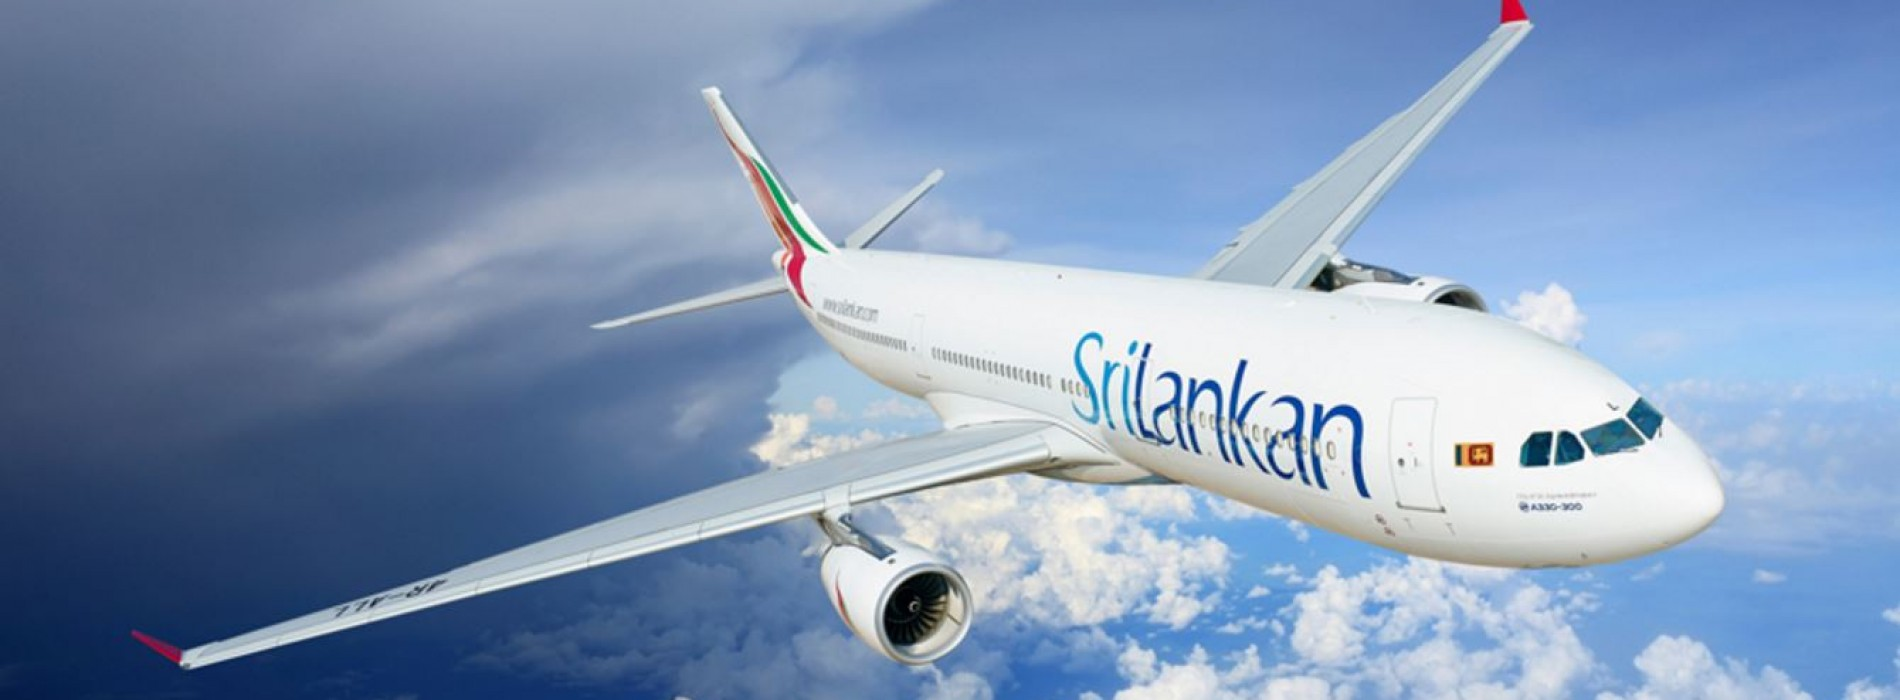 SriLankan Airlines strategically expanding its footprint in India